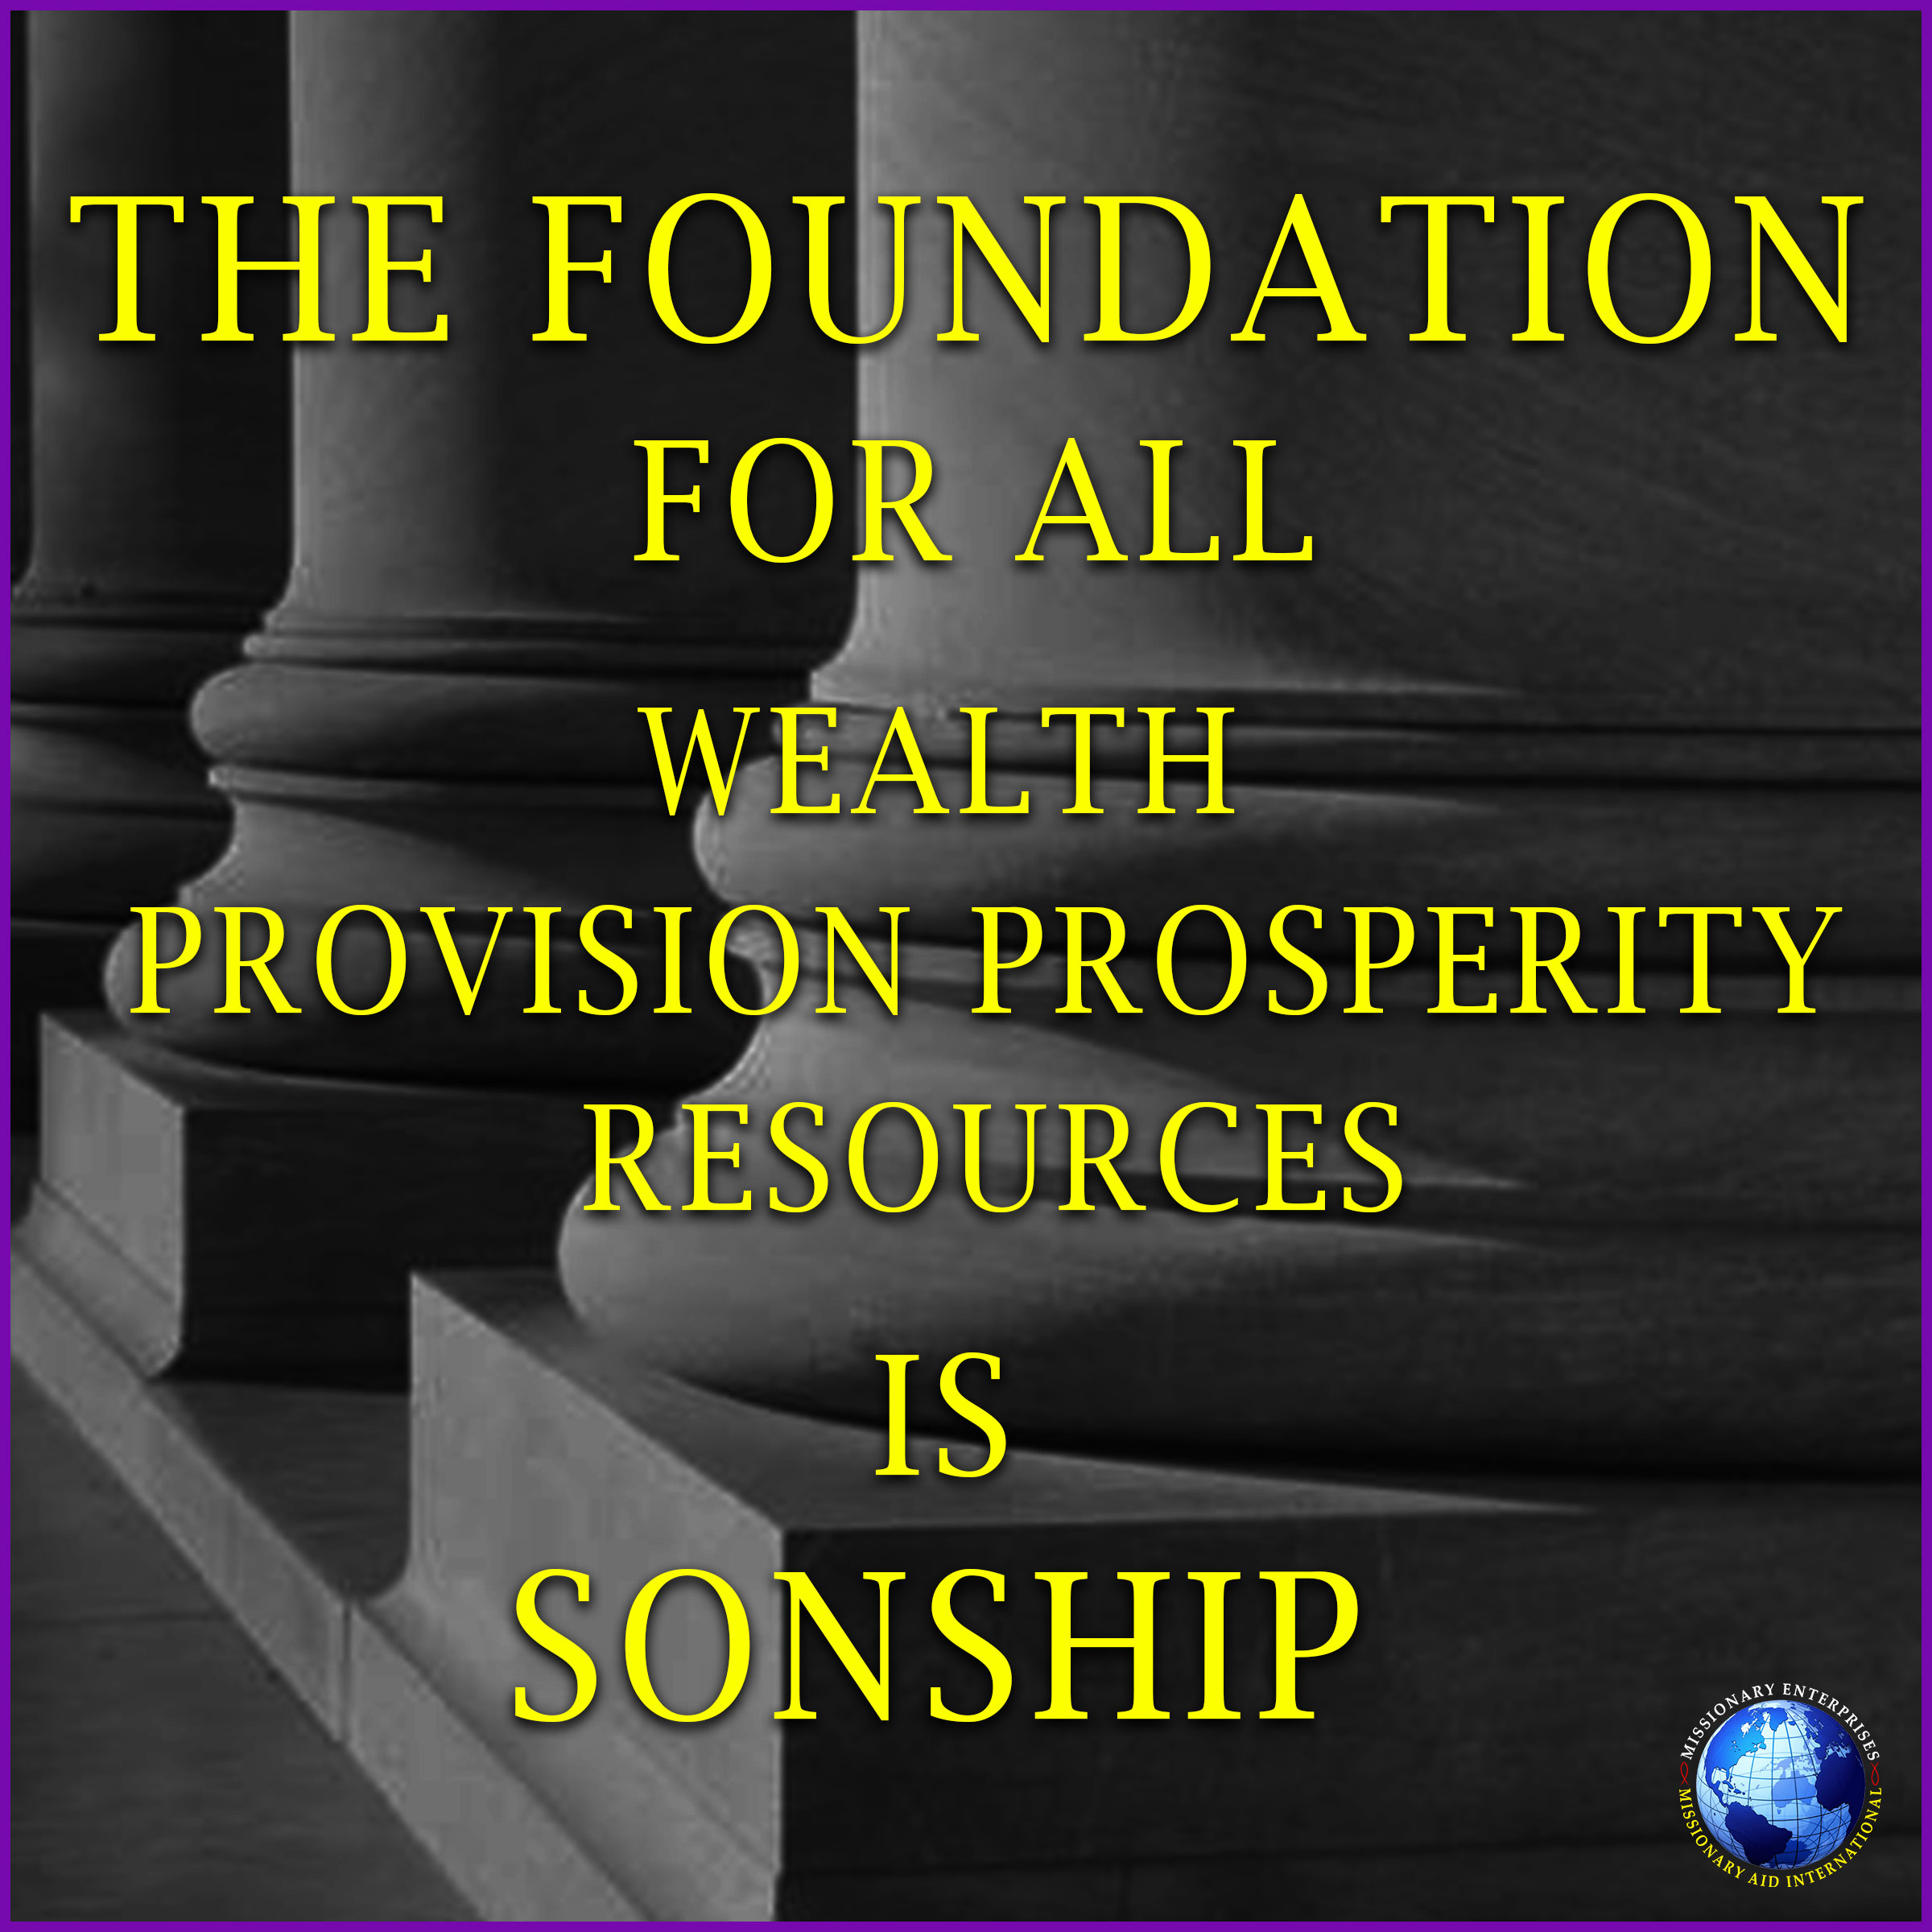 The Foundation for Wealth is Sonship